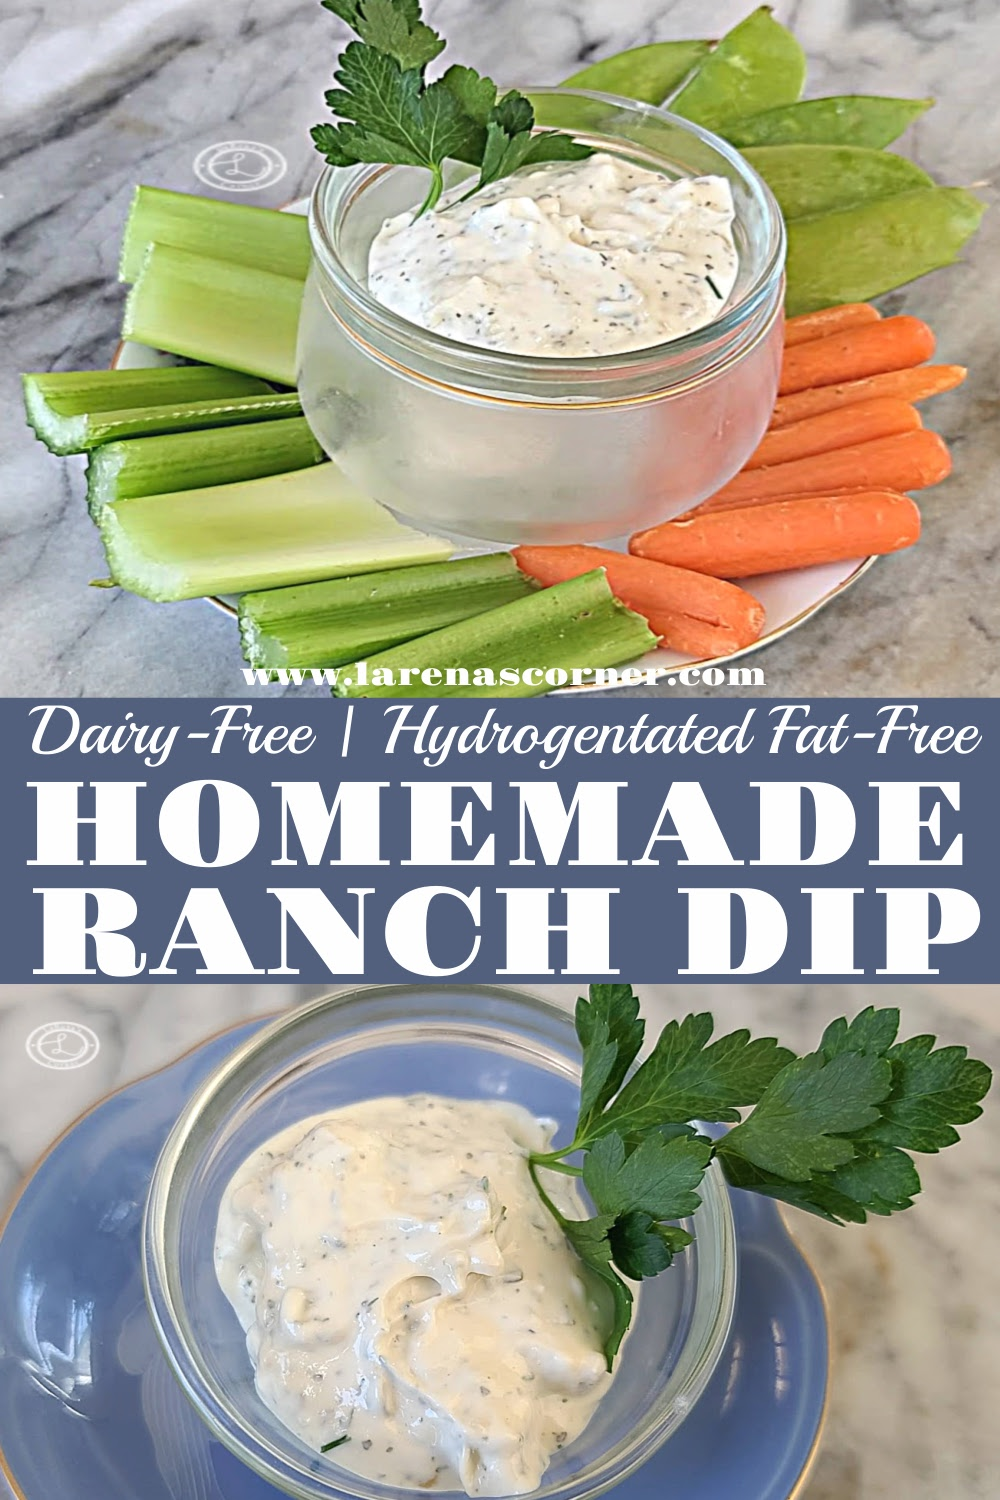 2 pictures of Dairy-Free Ranch Dip. One with just the dip. One photo of the dip with veggies.